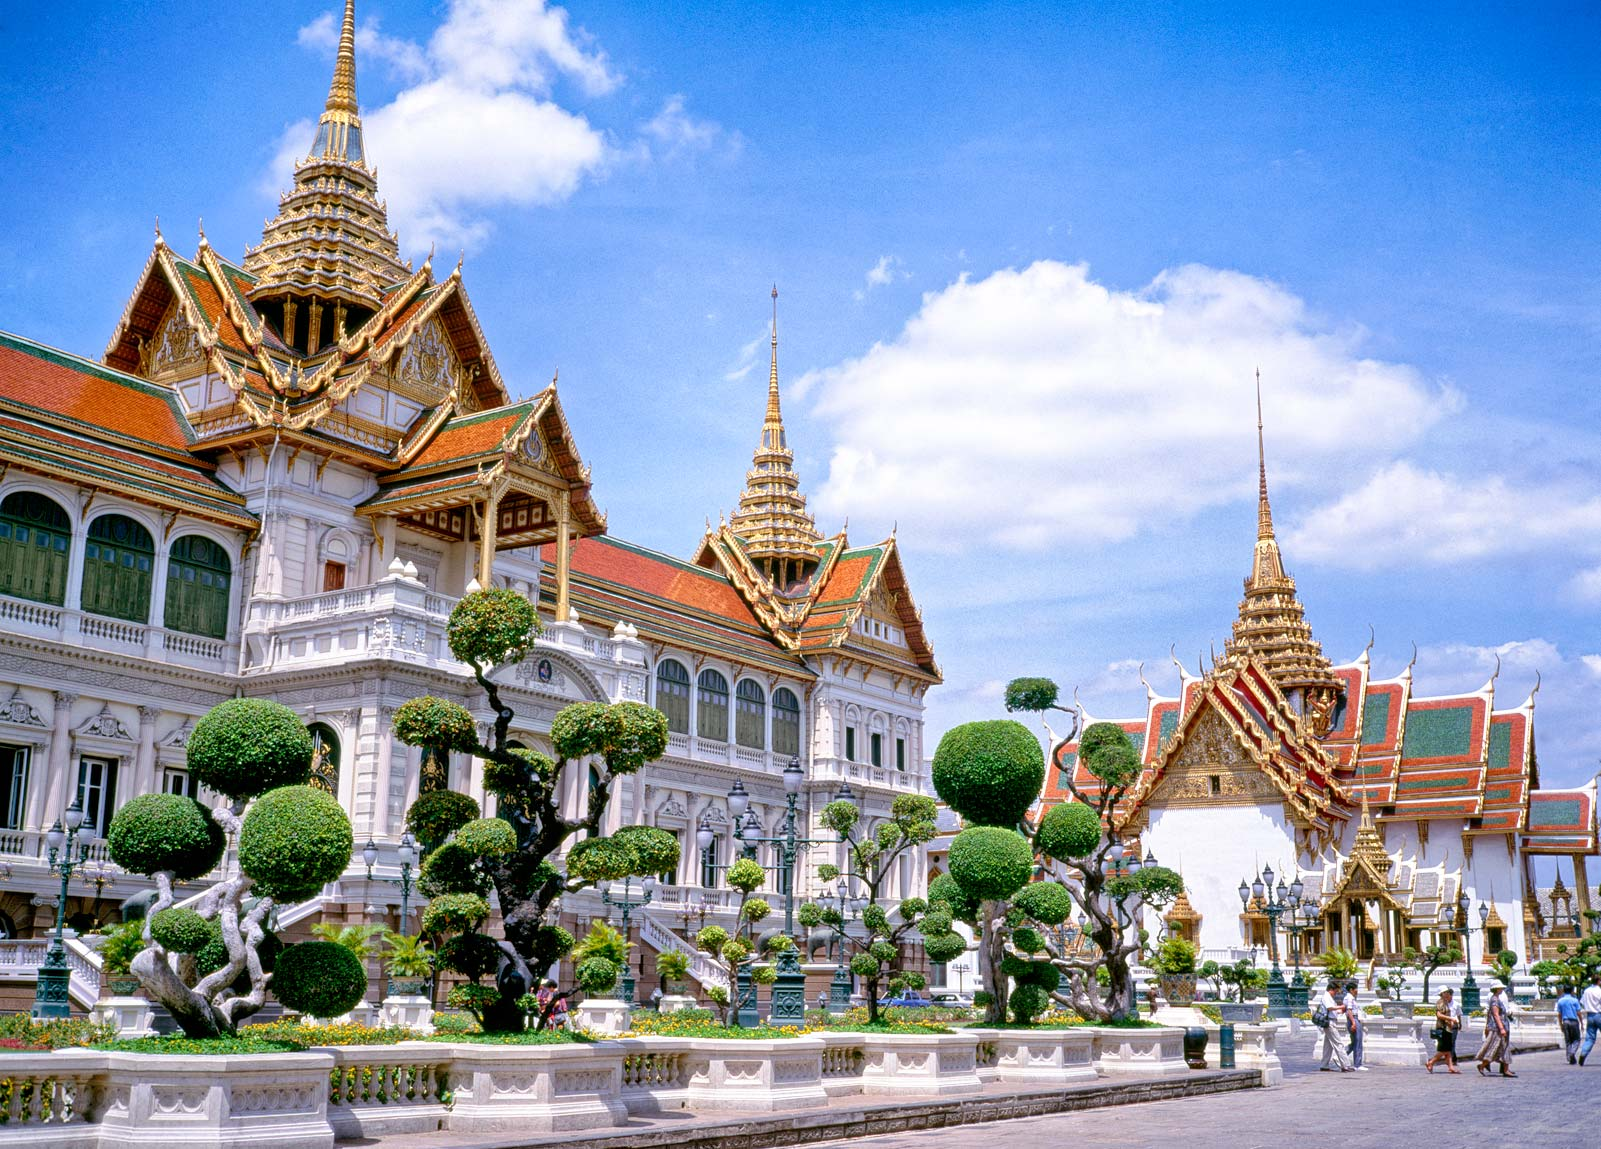 Travel to Bangkok: Bangkok Tourism Grand Palace, Wat Prakeaw, Floating Market. Low cost vacation packages.